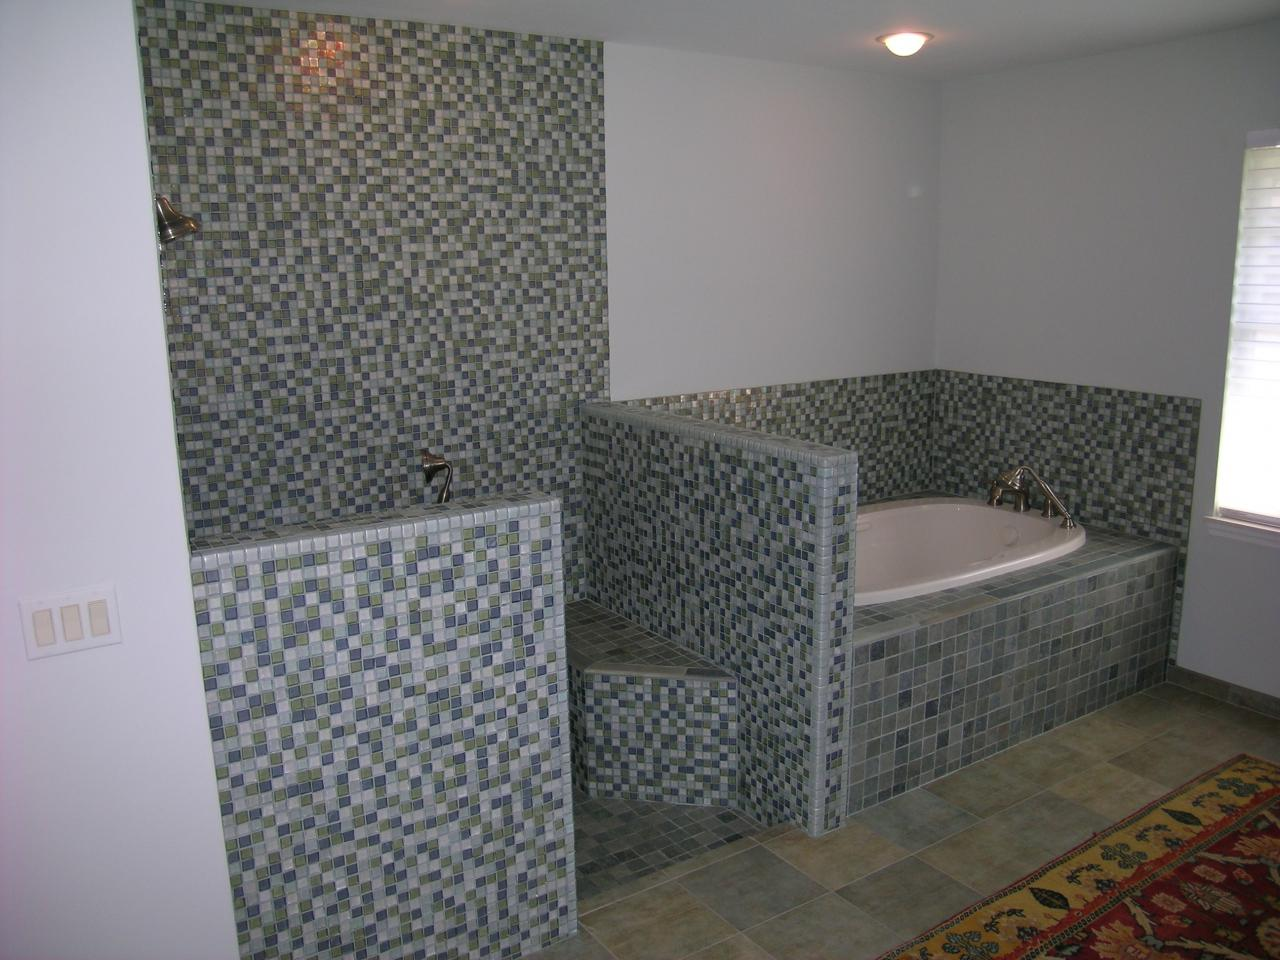 Tubs and tiles bathrooms bathroom tub how to tile around a tub step by step tub bathrooms dailygadgetfo Gallery